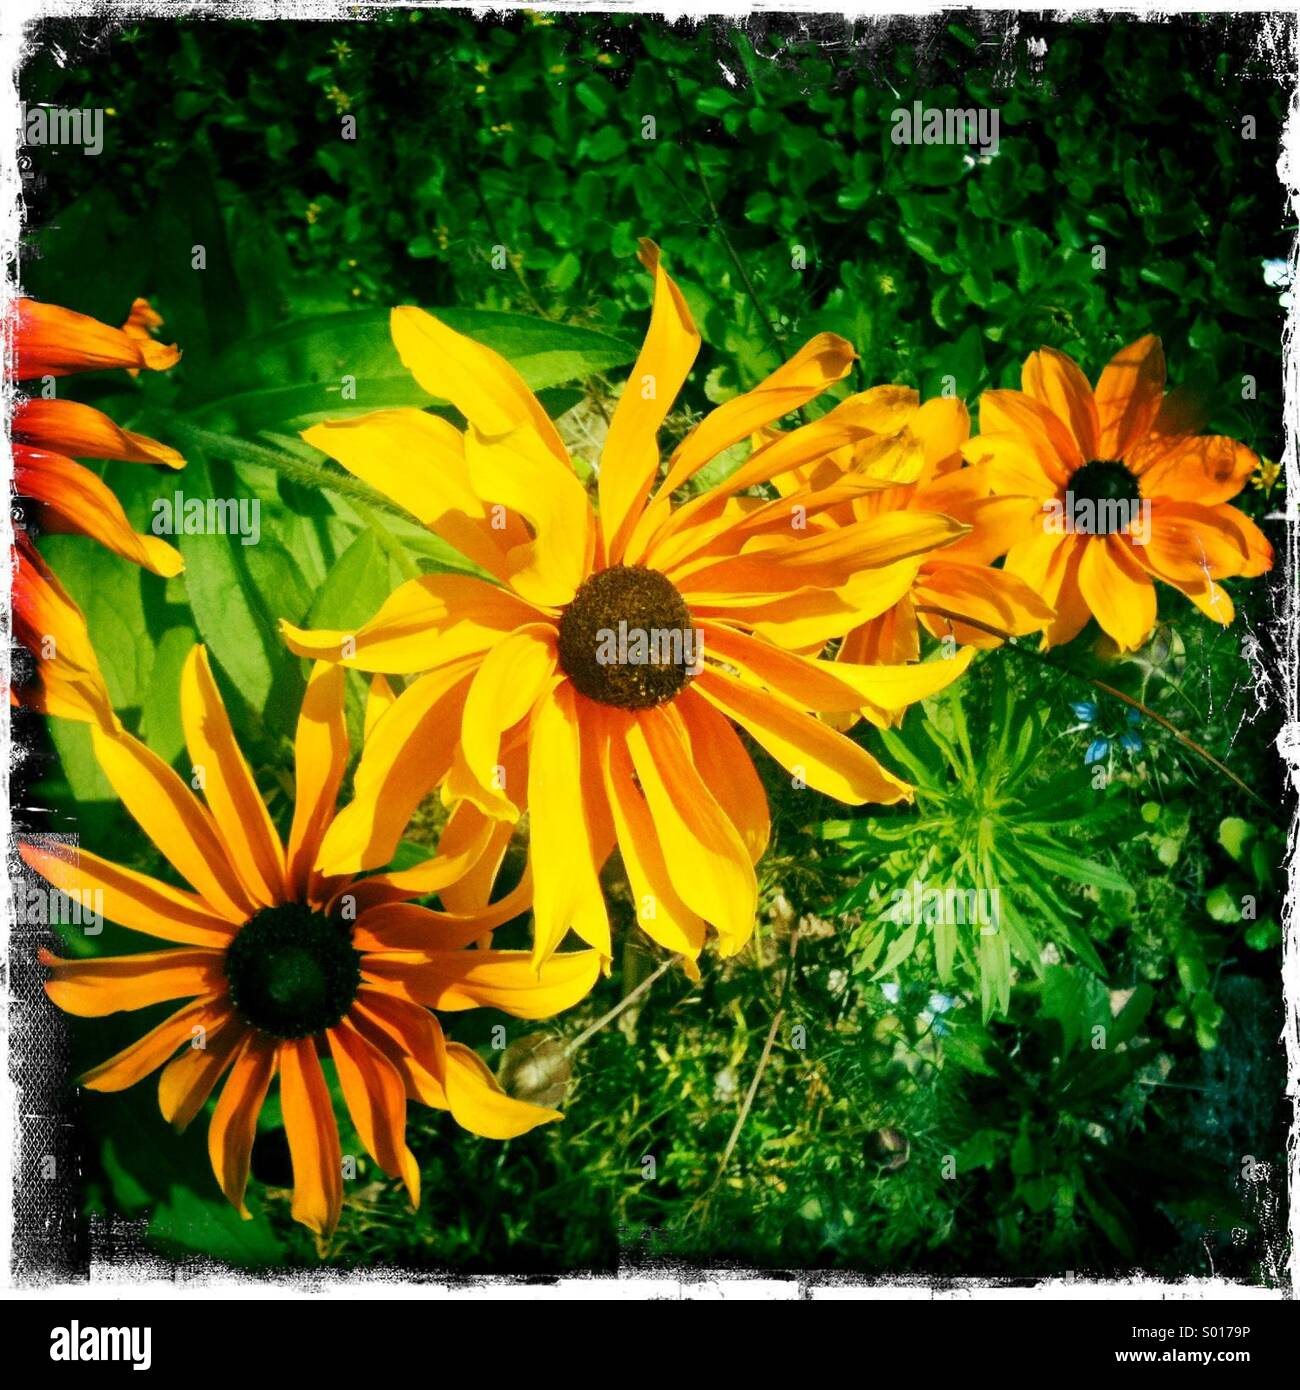 Impressionist composition of Yellow flowers golden petals with green leaves - Stock Image